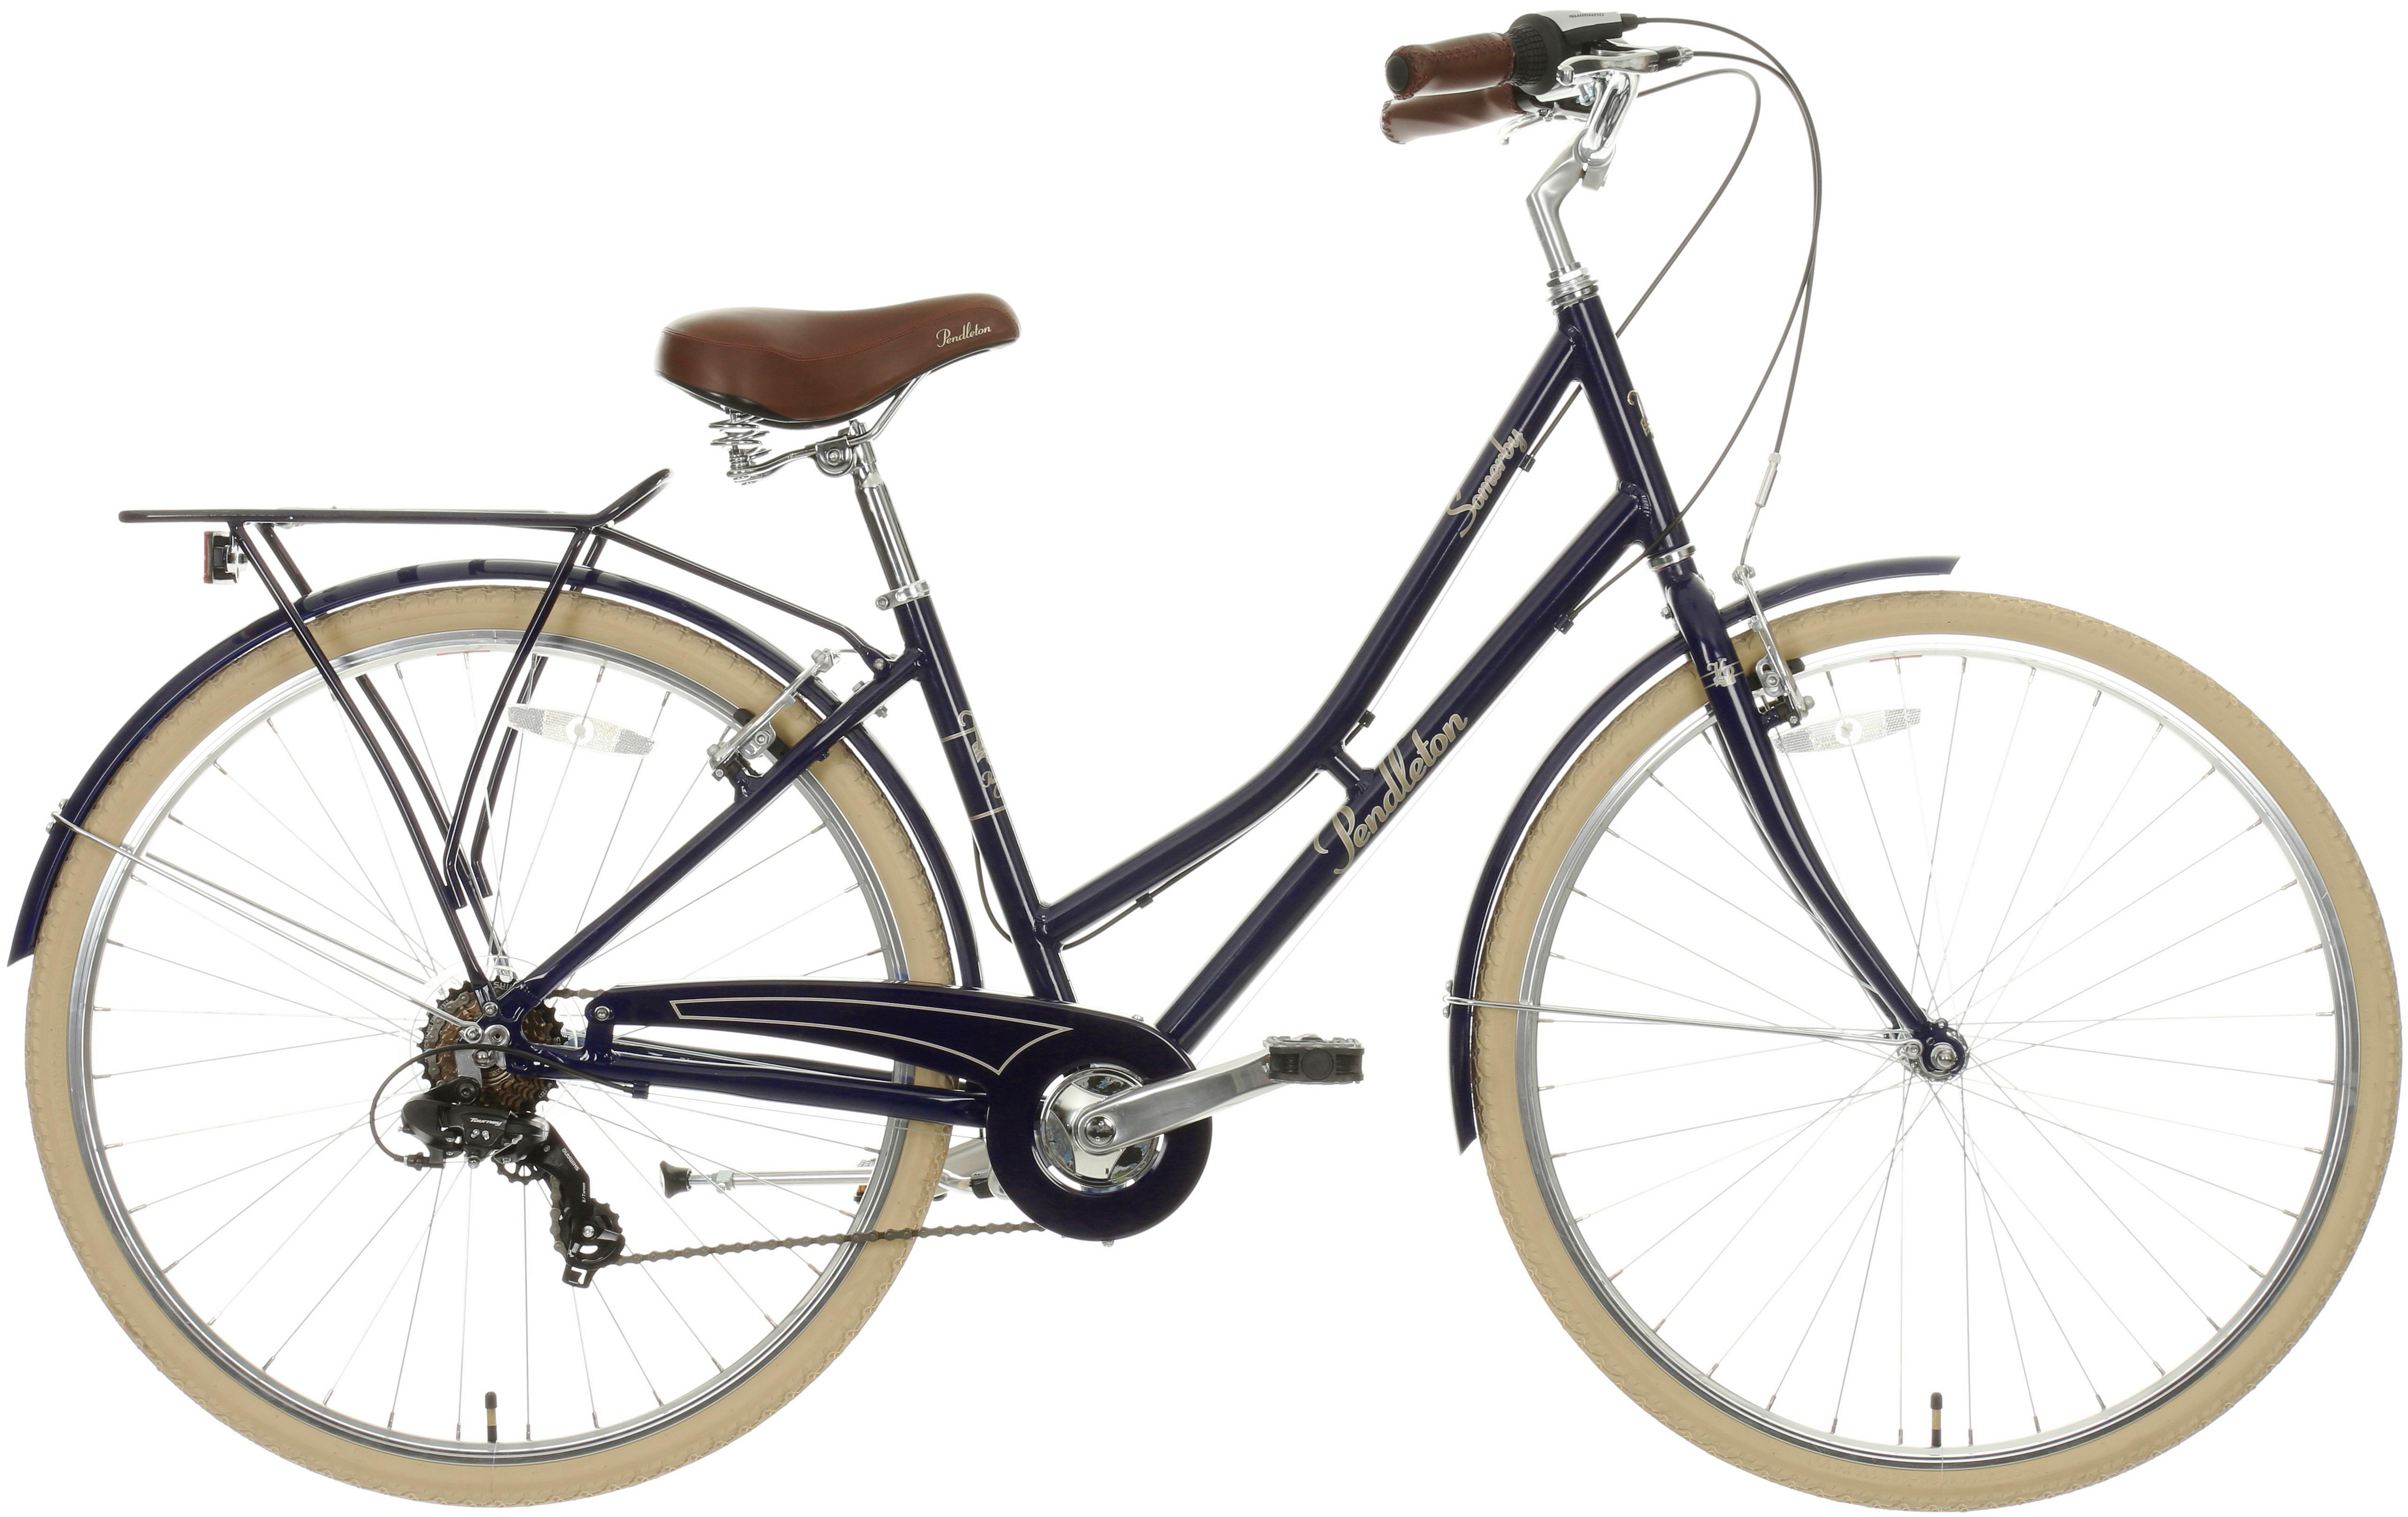 Pendleton Somerby Hybrid Bike - Midnight Blue 17 inch